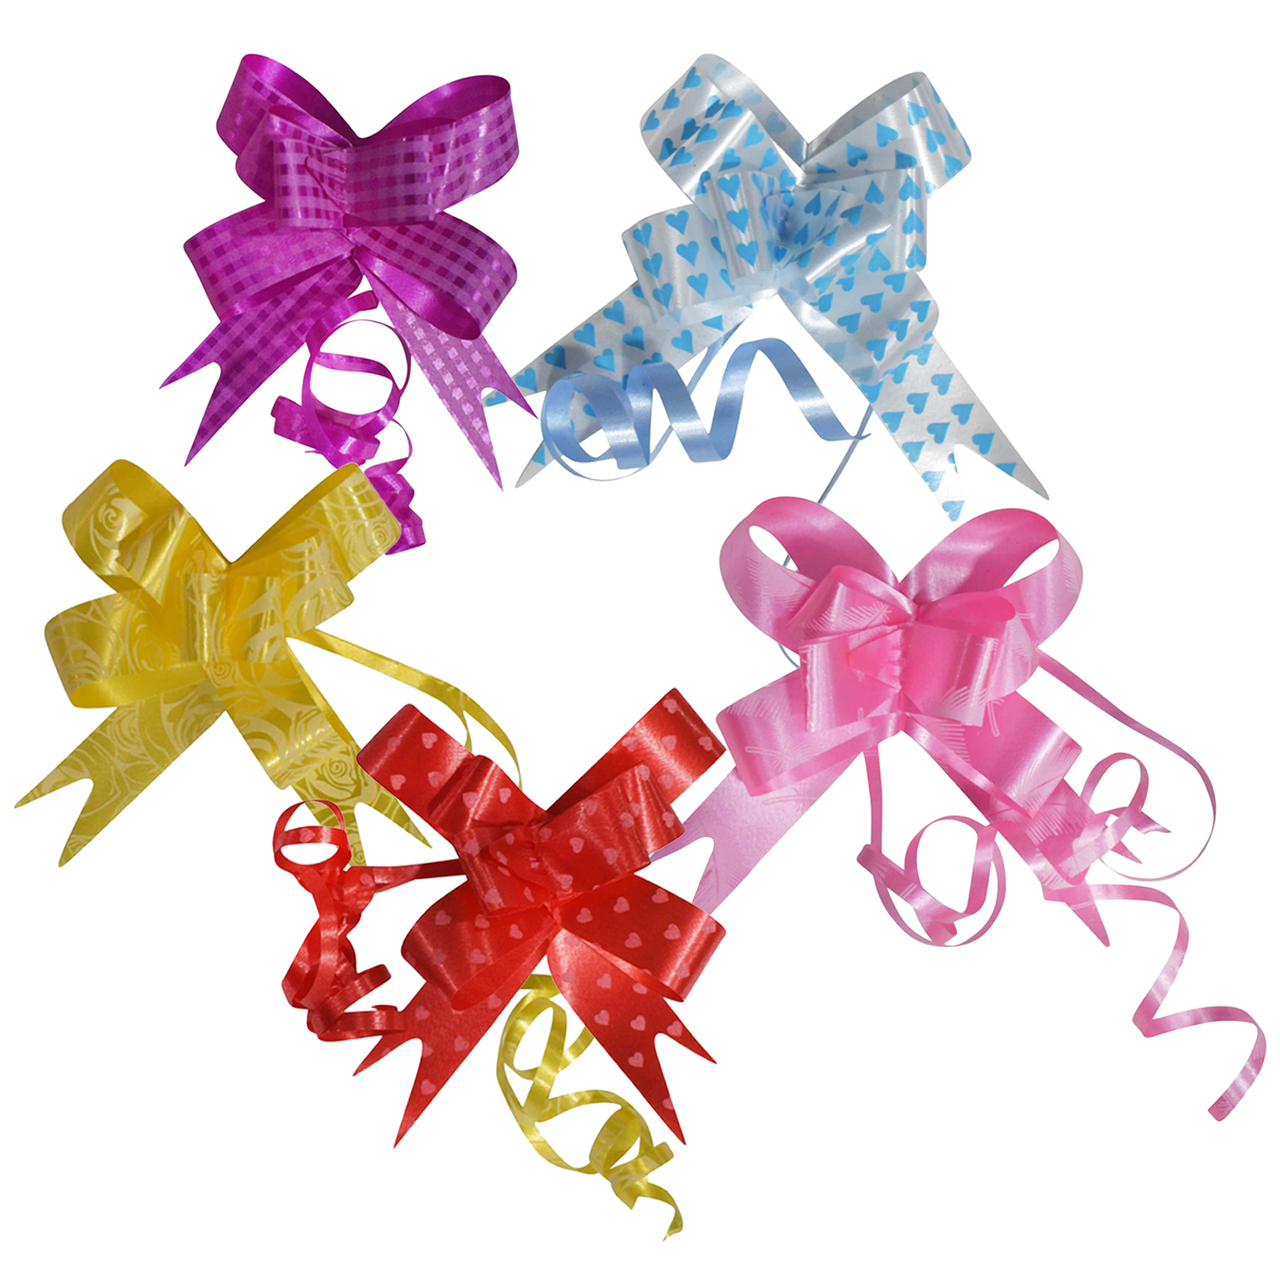 5 clipart ribbon. Pull flower l cm